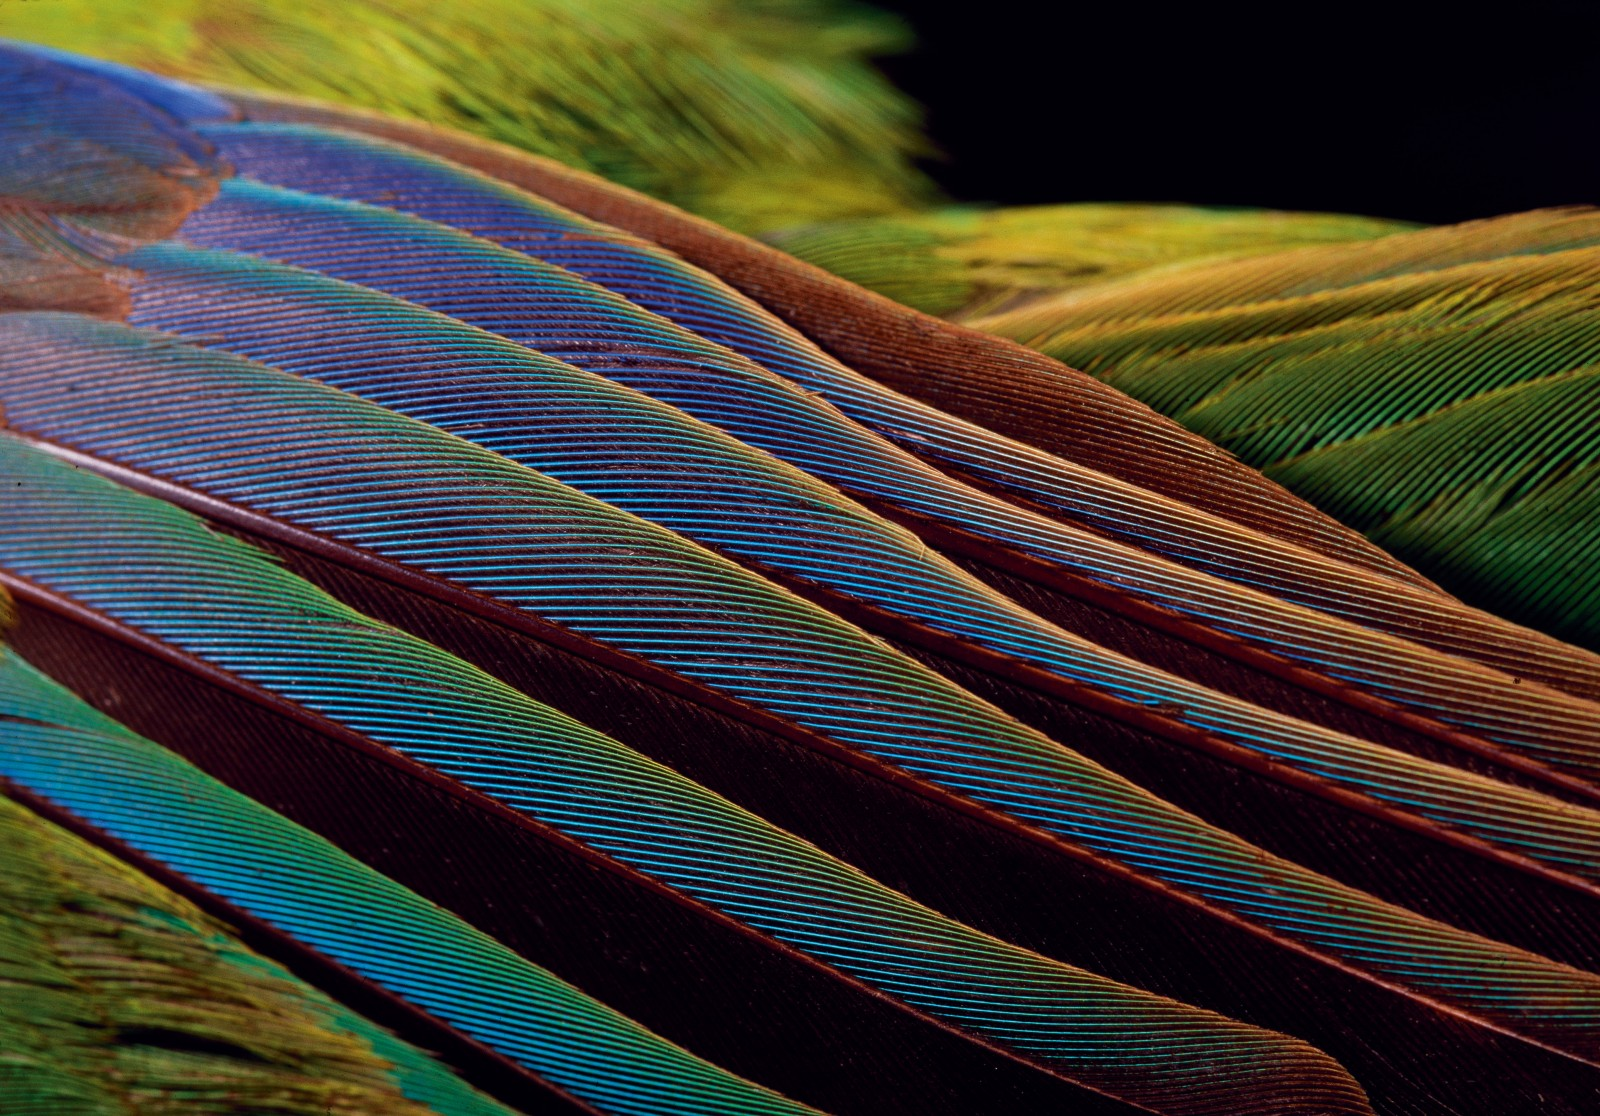 Kakariki distinguish themselves among New Zealand birds by their luminous plumage, displayed here on the iridescent wing of a red-crowned parakeet specimen in Otago Museum. But kakariki are also prone to radical colour mutations, invariably the result of hybridisation, as evidenced in the ultramarine example above. Colour morph varieties have been recorded for each of the mainland and offshore taxa. Most commonly the green colouration is replaced by another colour, generally yellow, but the blue wing colouration and crown usually remains. Sir Walter Buller reported numerous colour varieties including red-crowned parakeets with the back, rump and upper surface of the wings a mottled canary yellow and the tail entirely yellow. Colour morphs also affect other New Zealand avifauna. White kiwi have been observed over the years, the most recent in a Taranaki paddock, and a yellow kea was recently spotted in the South Island high country causing quite a stir in New Zealand ornithology circles. Early sources also record bright canary yellow kakapo and various colour morphs in kaka.